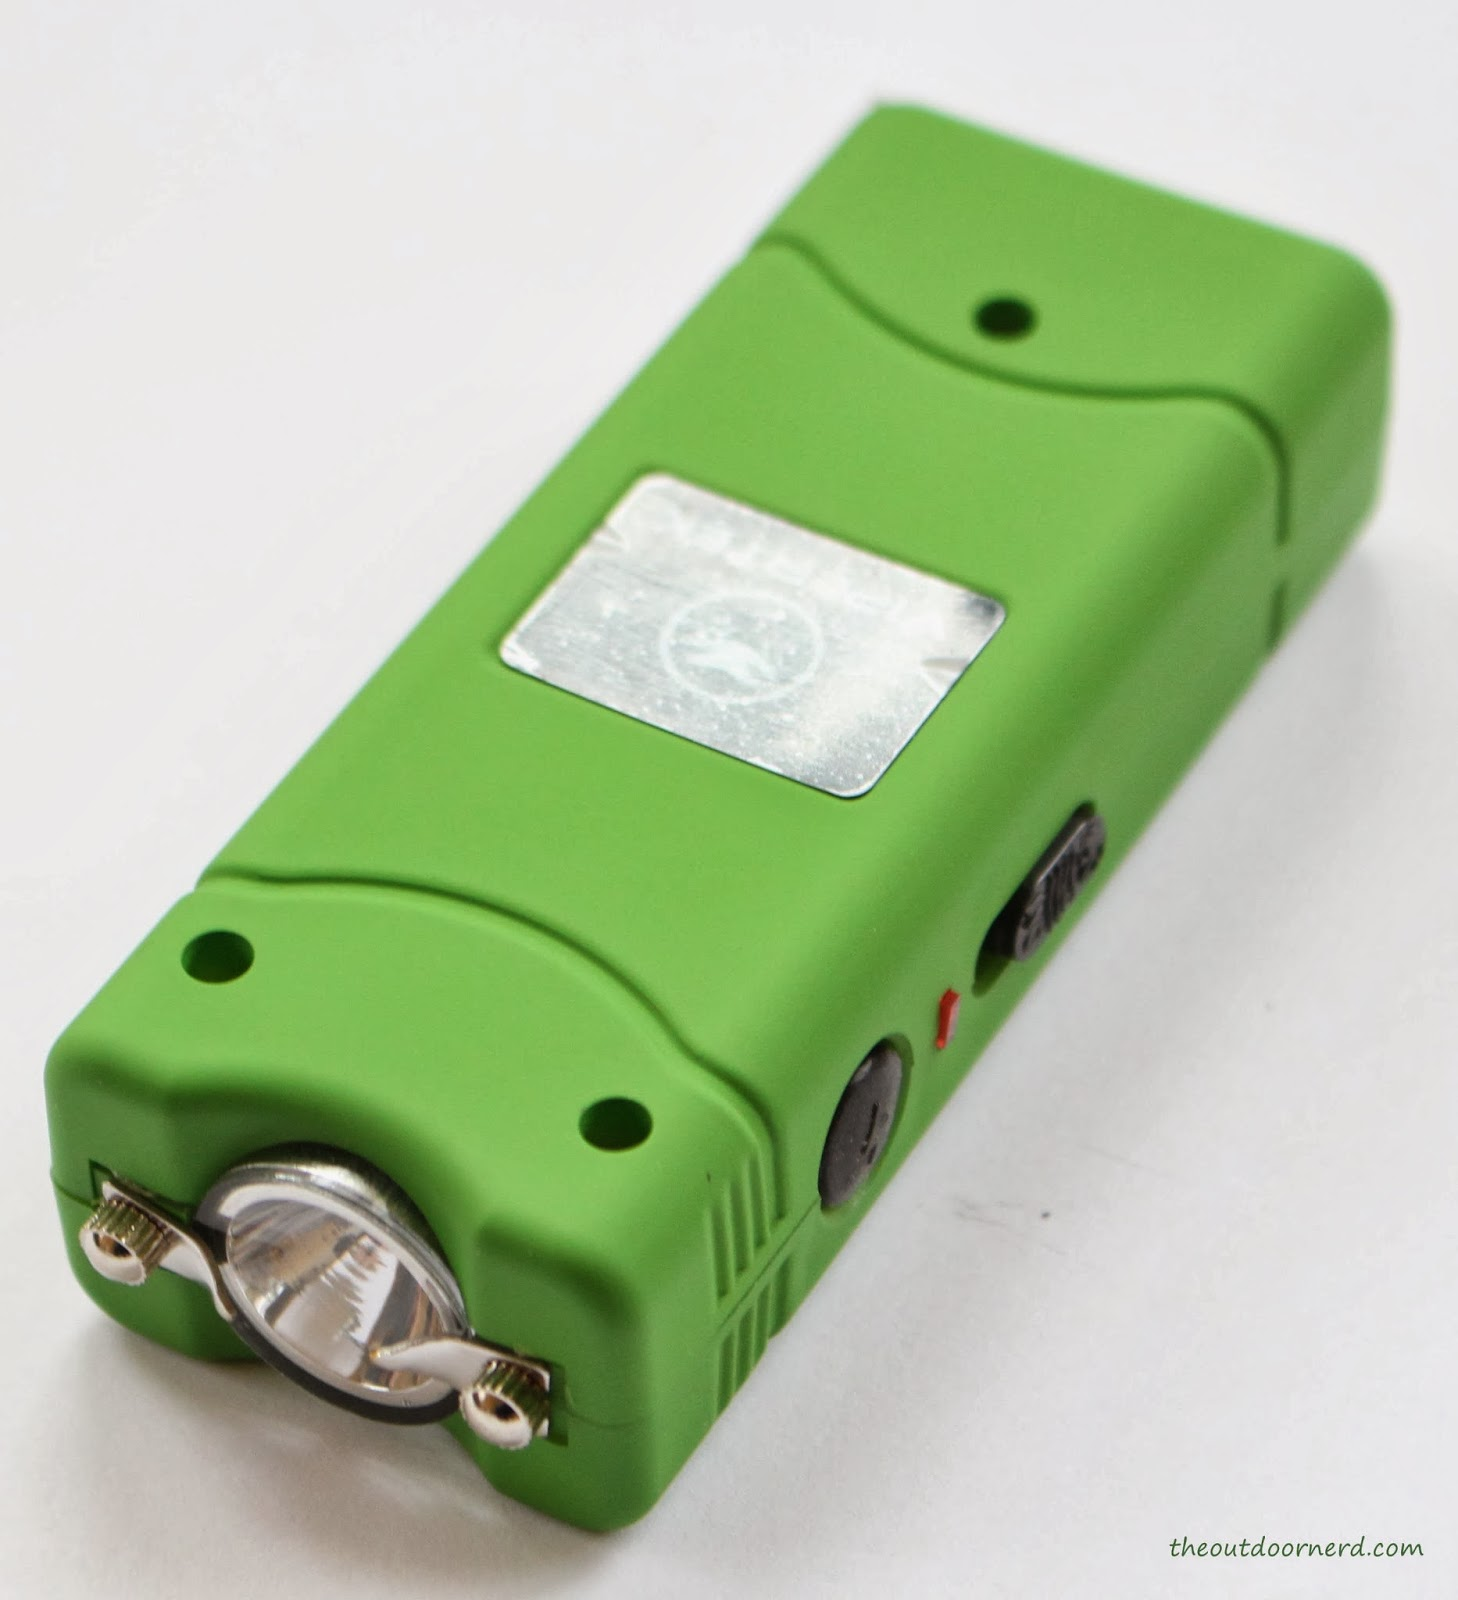 Vipertek VTS-881: Closeup Of Green Model 2